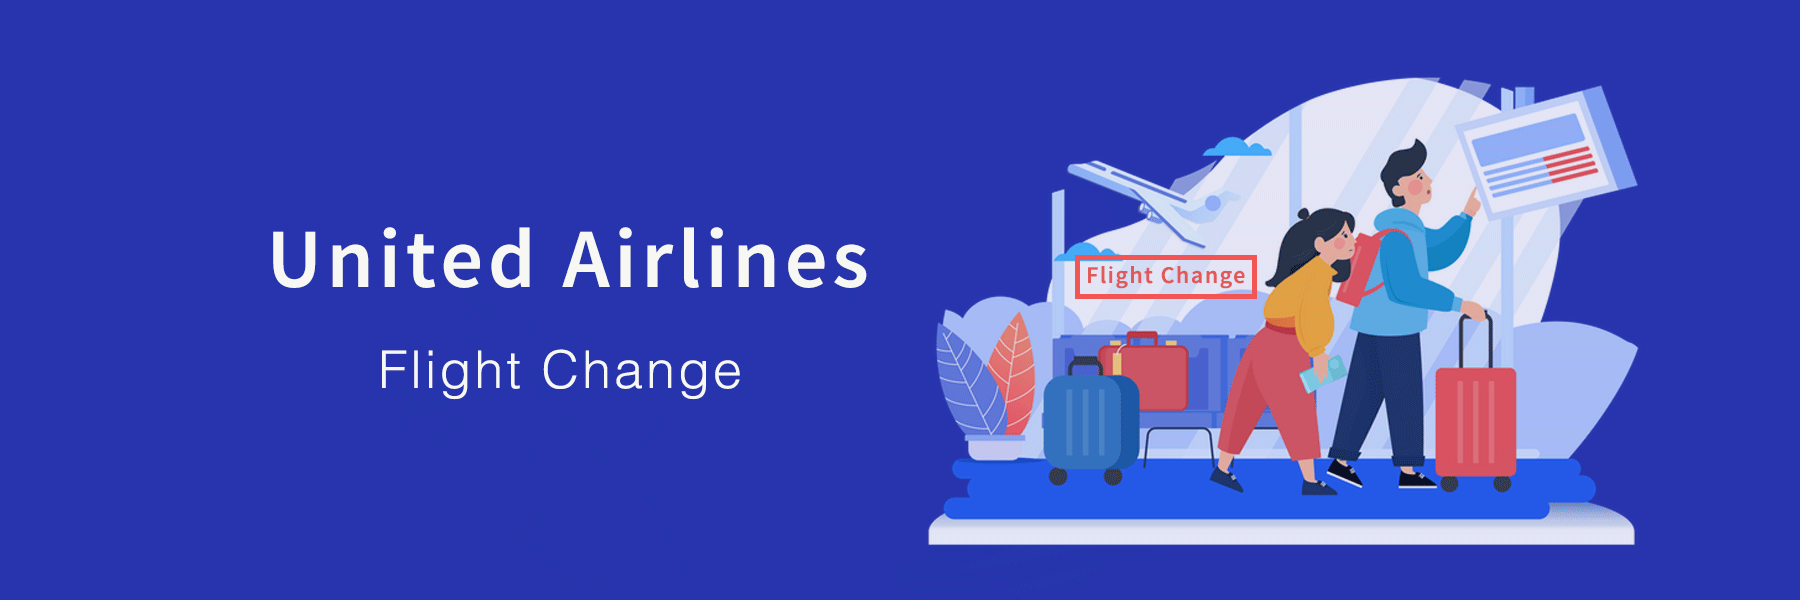 United Airlines Flight Change